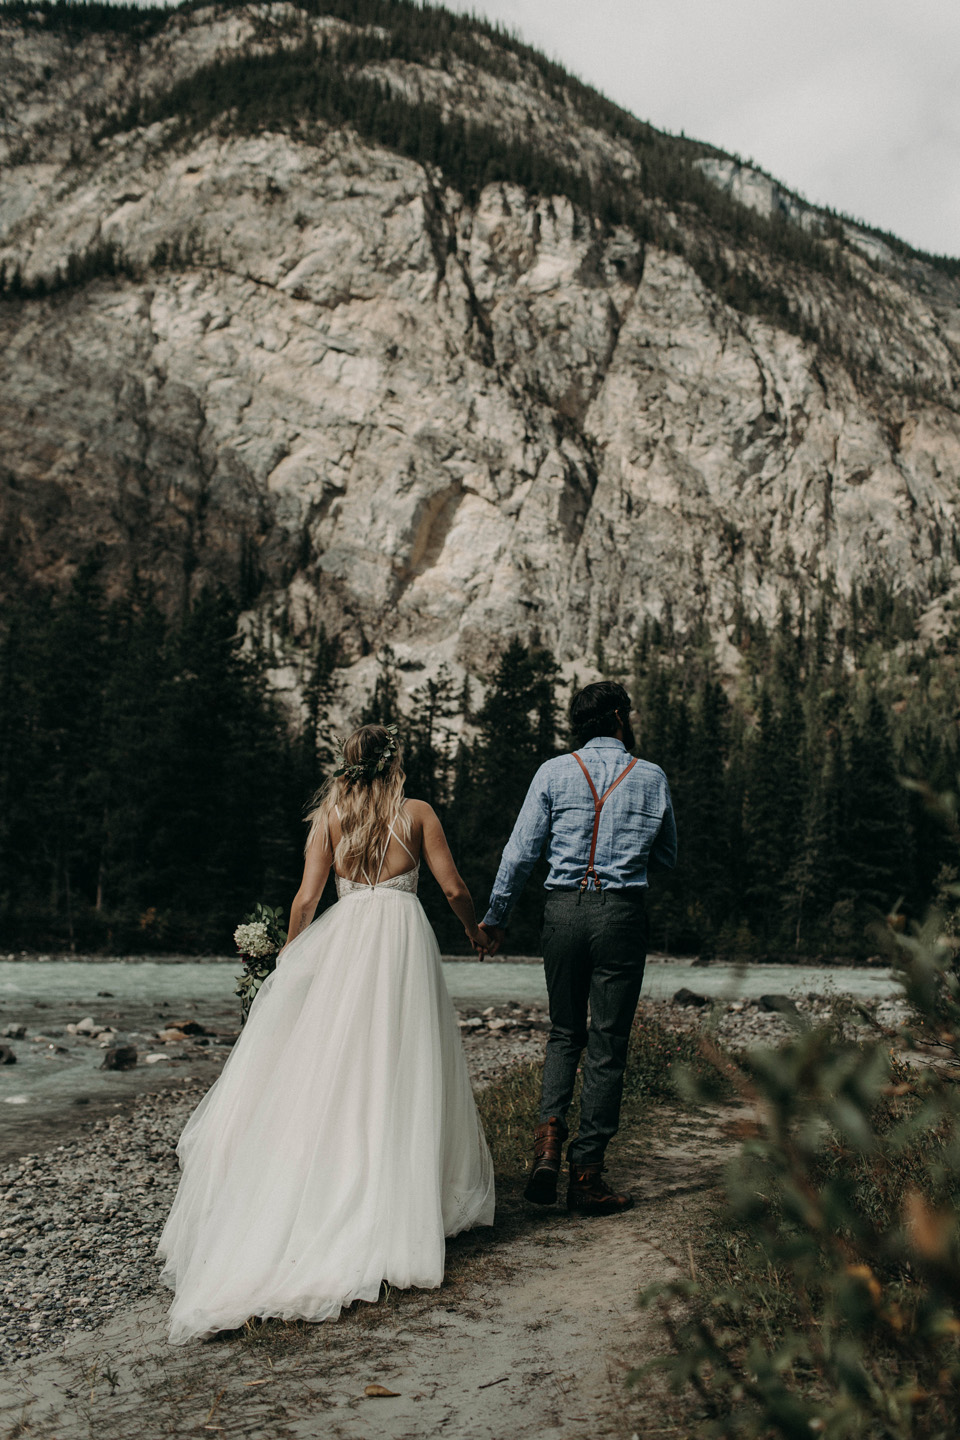 BANFF ADVENTURE ELOPEMENT - JENNA + DAN - deCEMBER 8, 2017